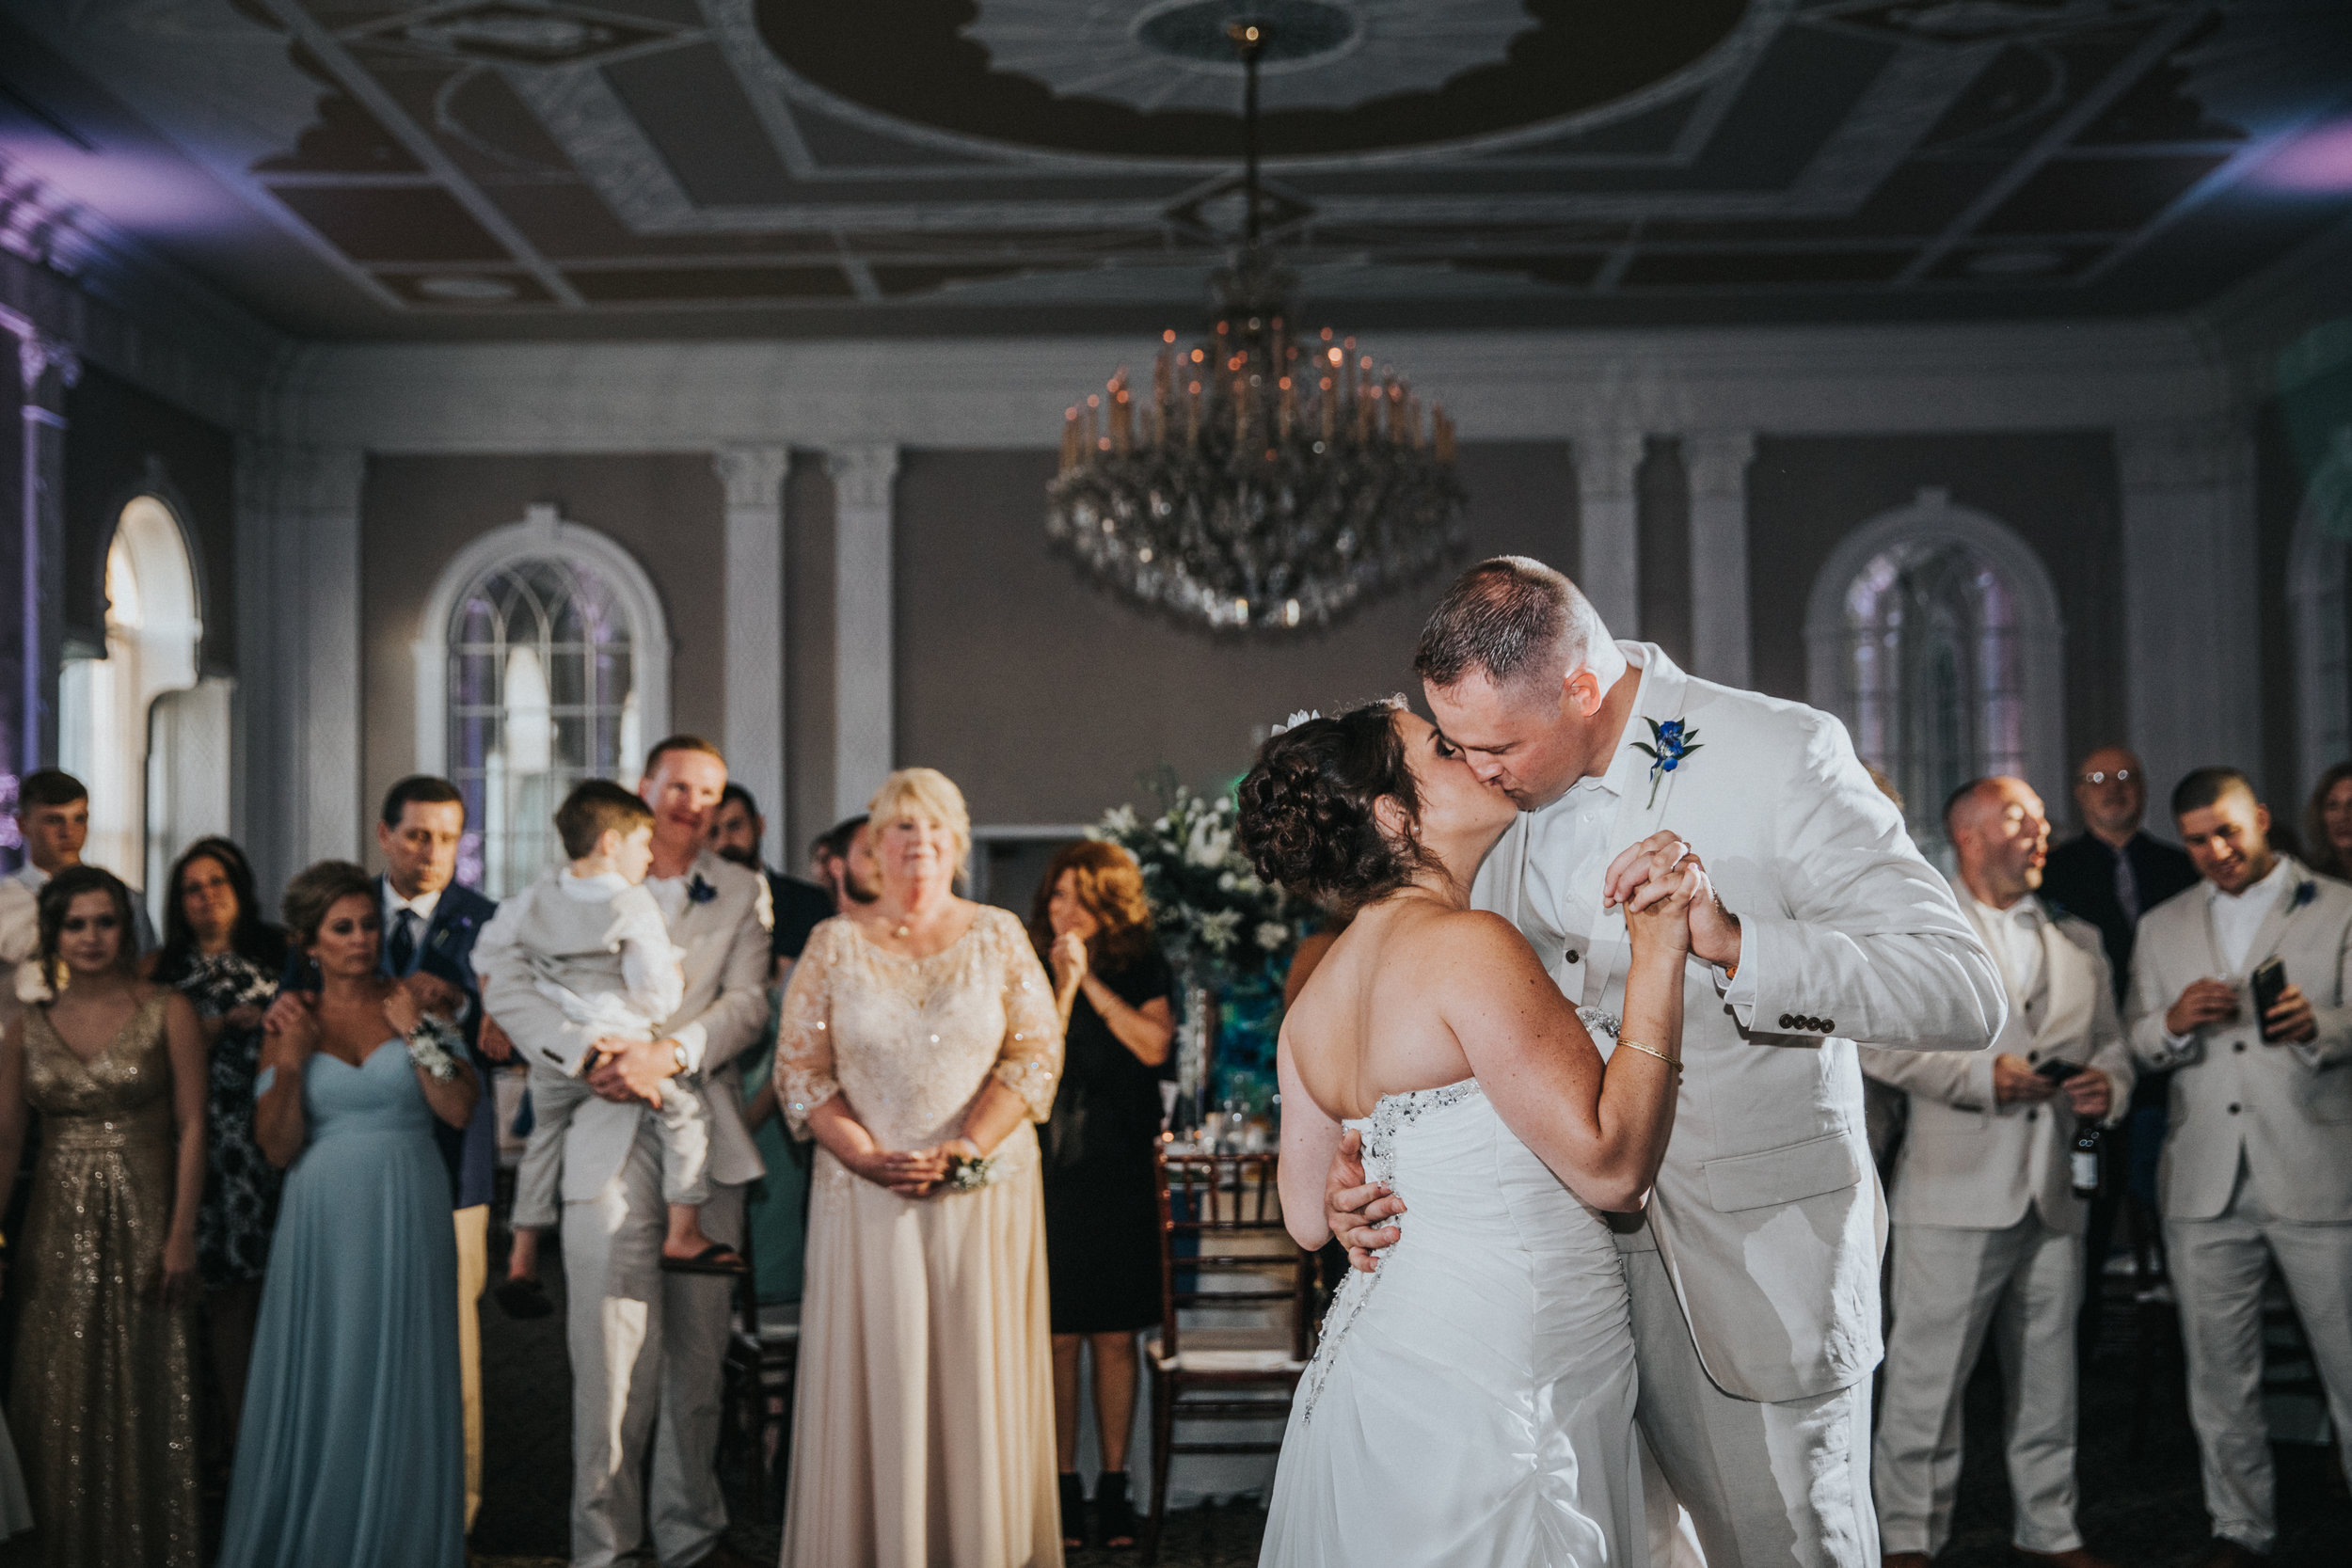 JennaLynnPhotography-NJWeddingPhotographer-Wedding-TheBerkeley-AsburyPark-Allison&Michael-Reception-19.jpg